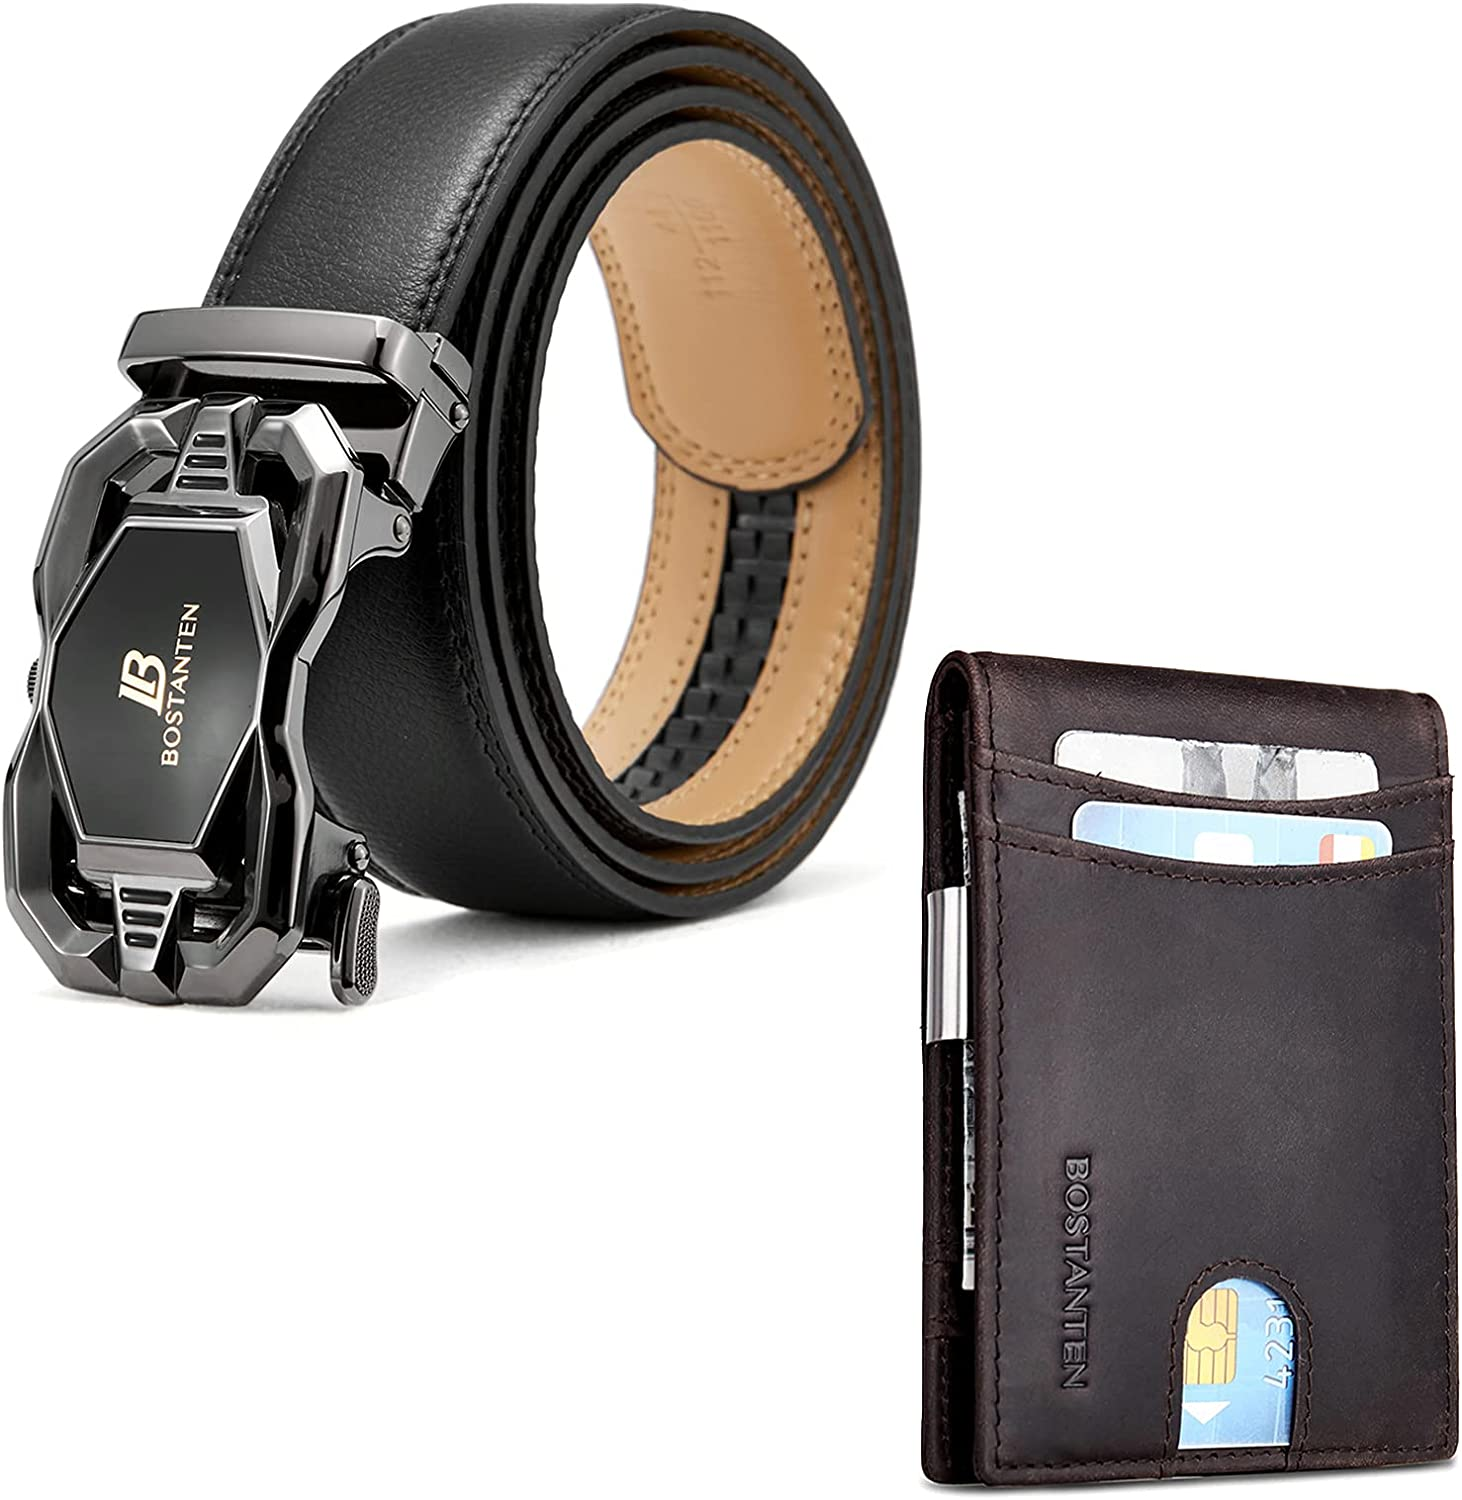 BOSTANTEN Men's Leather Ratchet Dress Belt with Automatic Sliding Buckle and Leather Wallets for Men Bifold Money Clip Slim Front Pocket RFID Blocking Card Holder Coffee